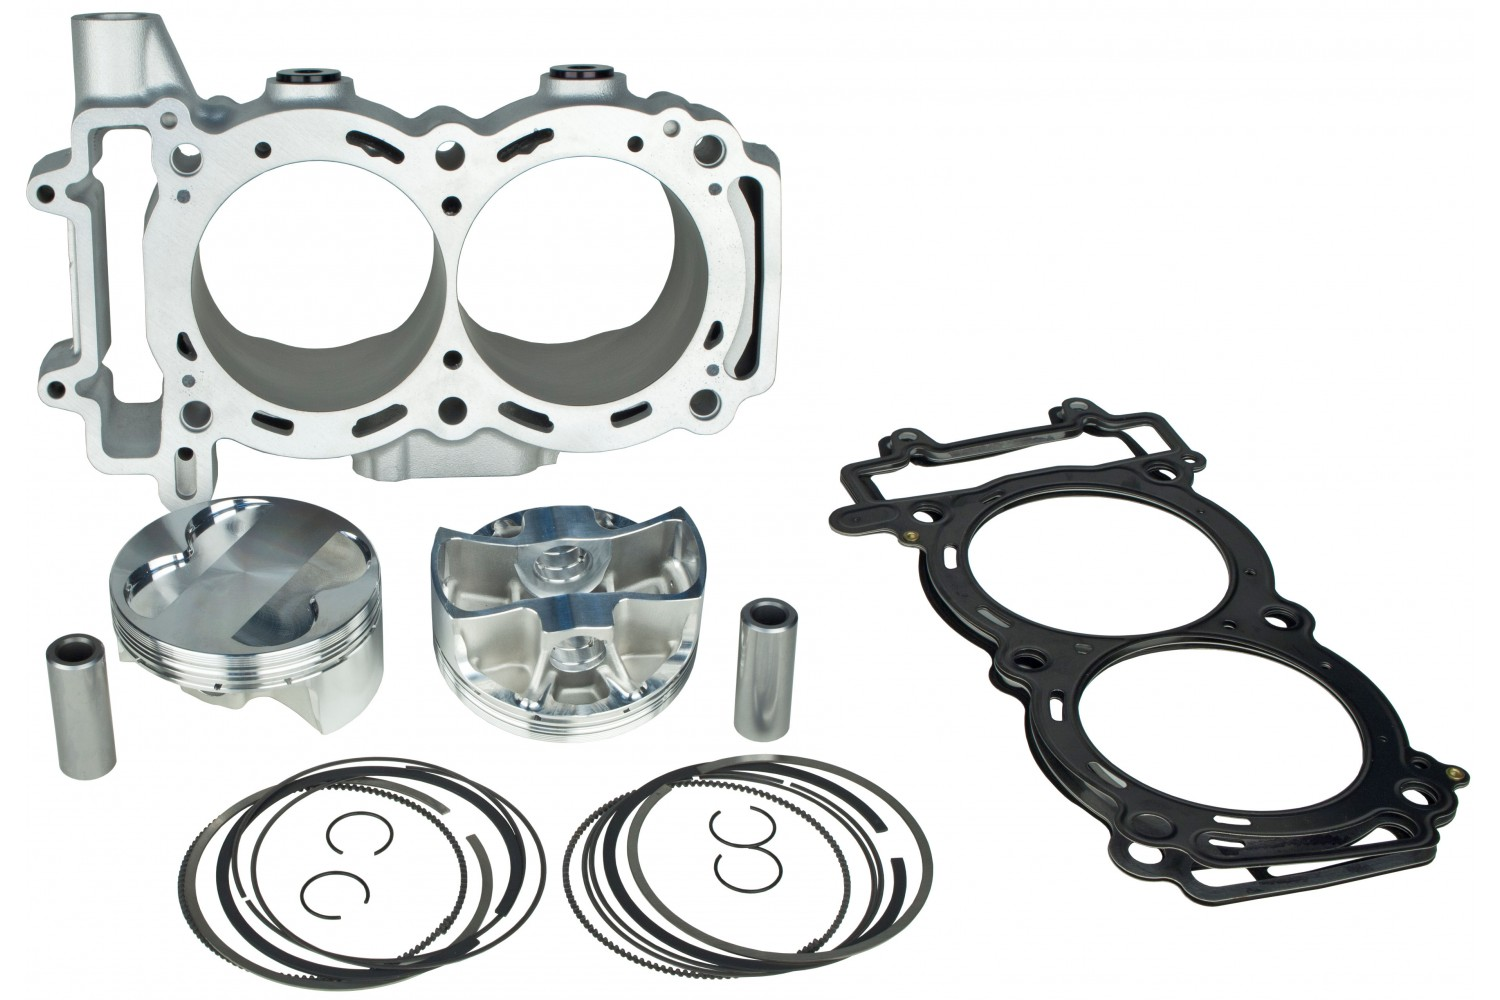 Sparks Racing 1065cc big bore kit